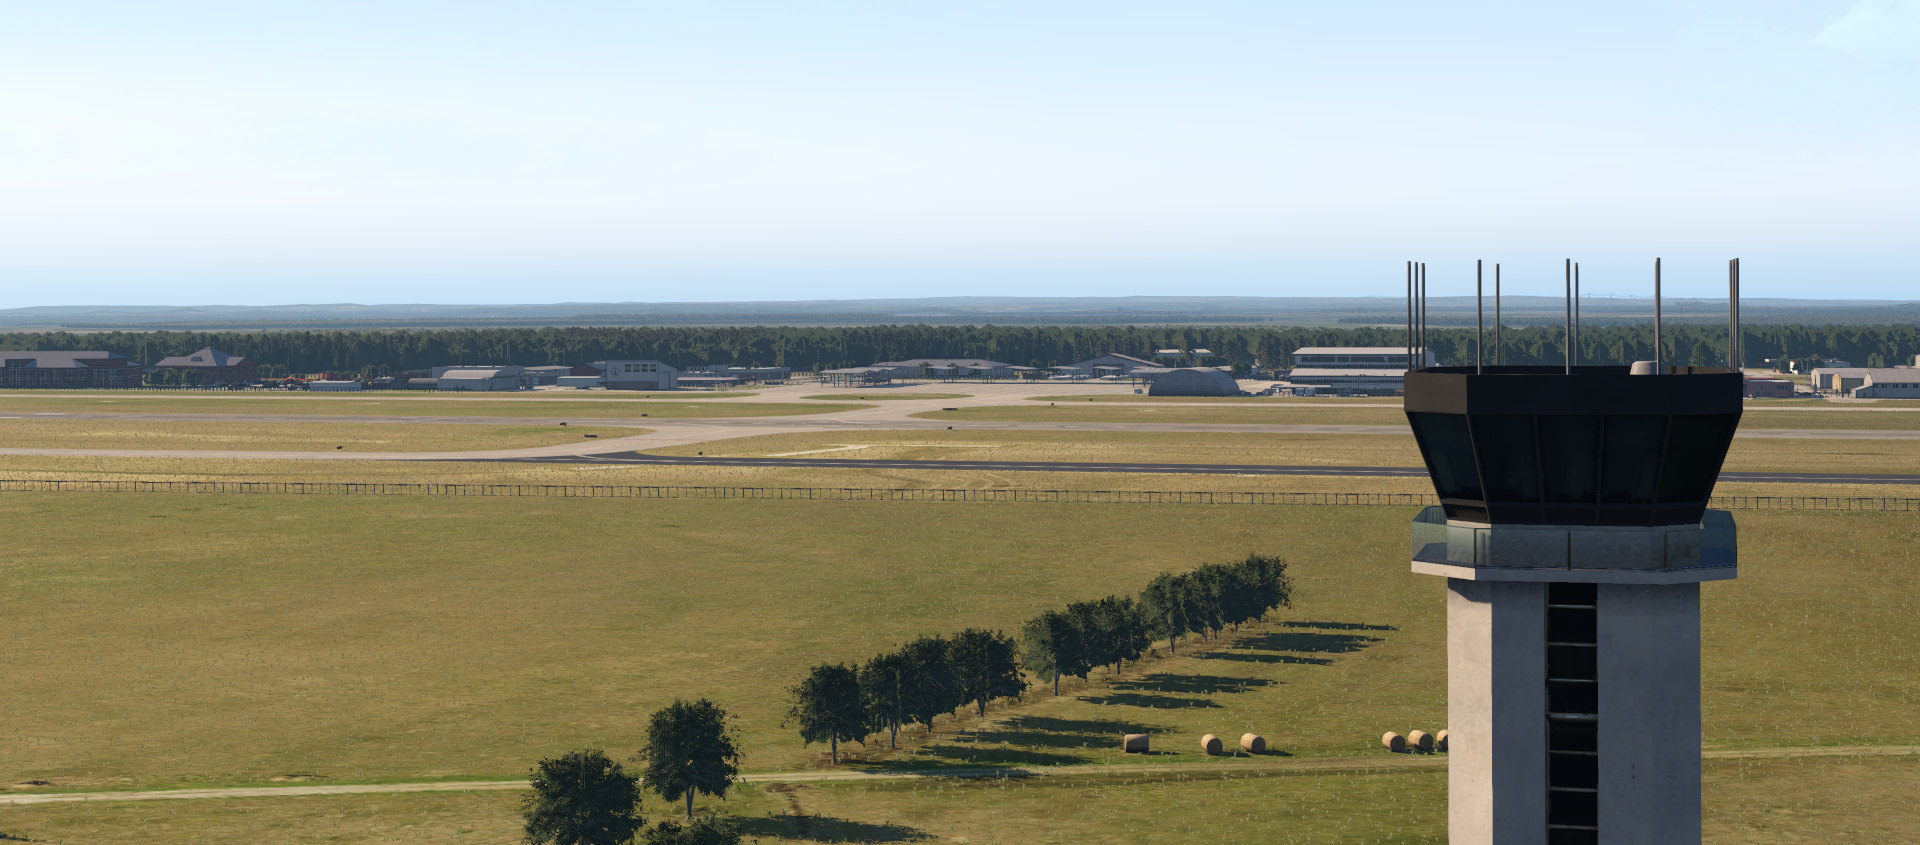 Montgomery Regional Airport by AeroDesigns and X-Codr